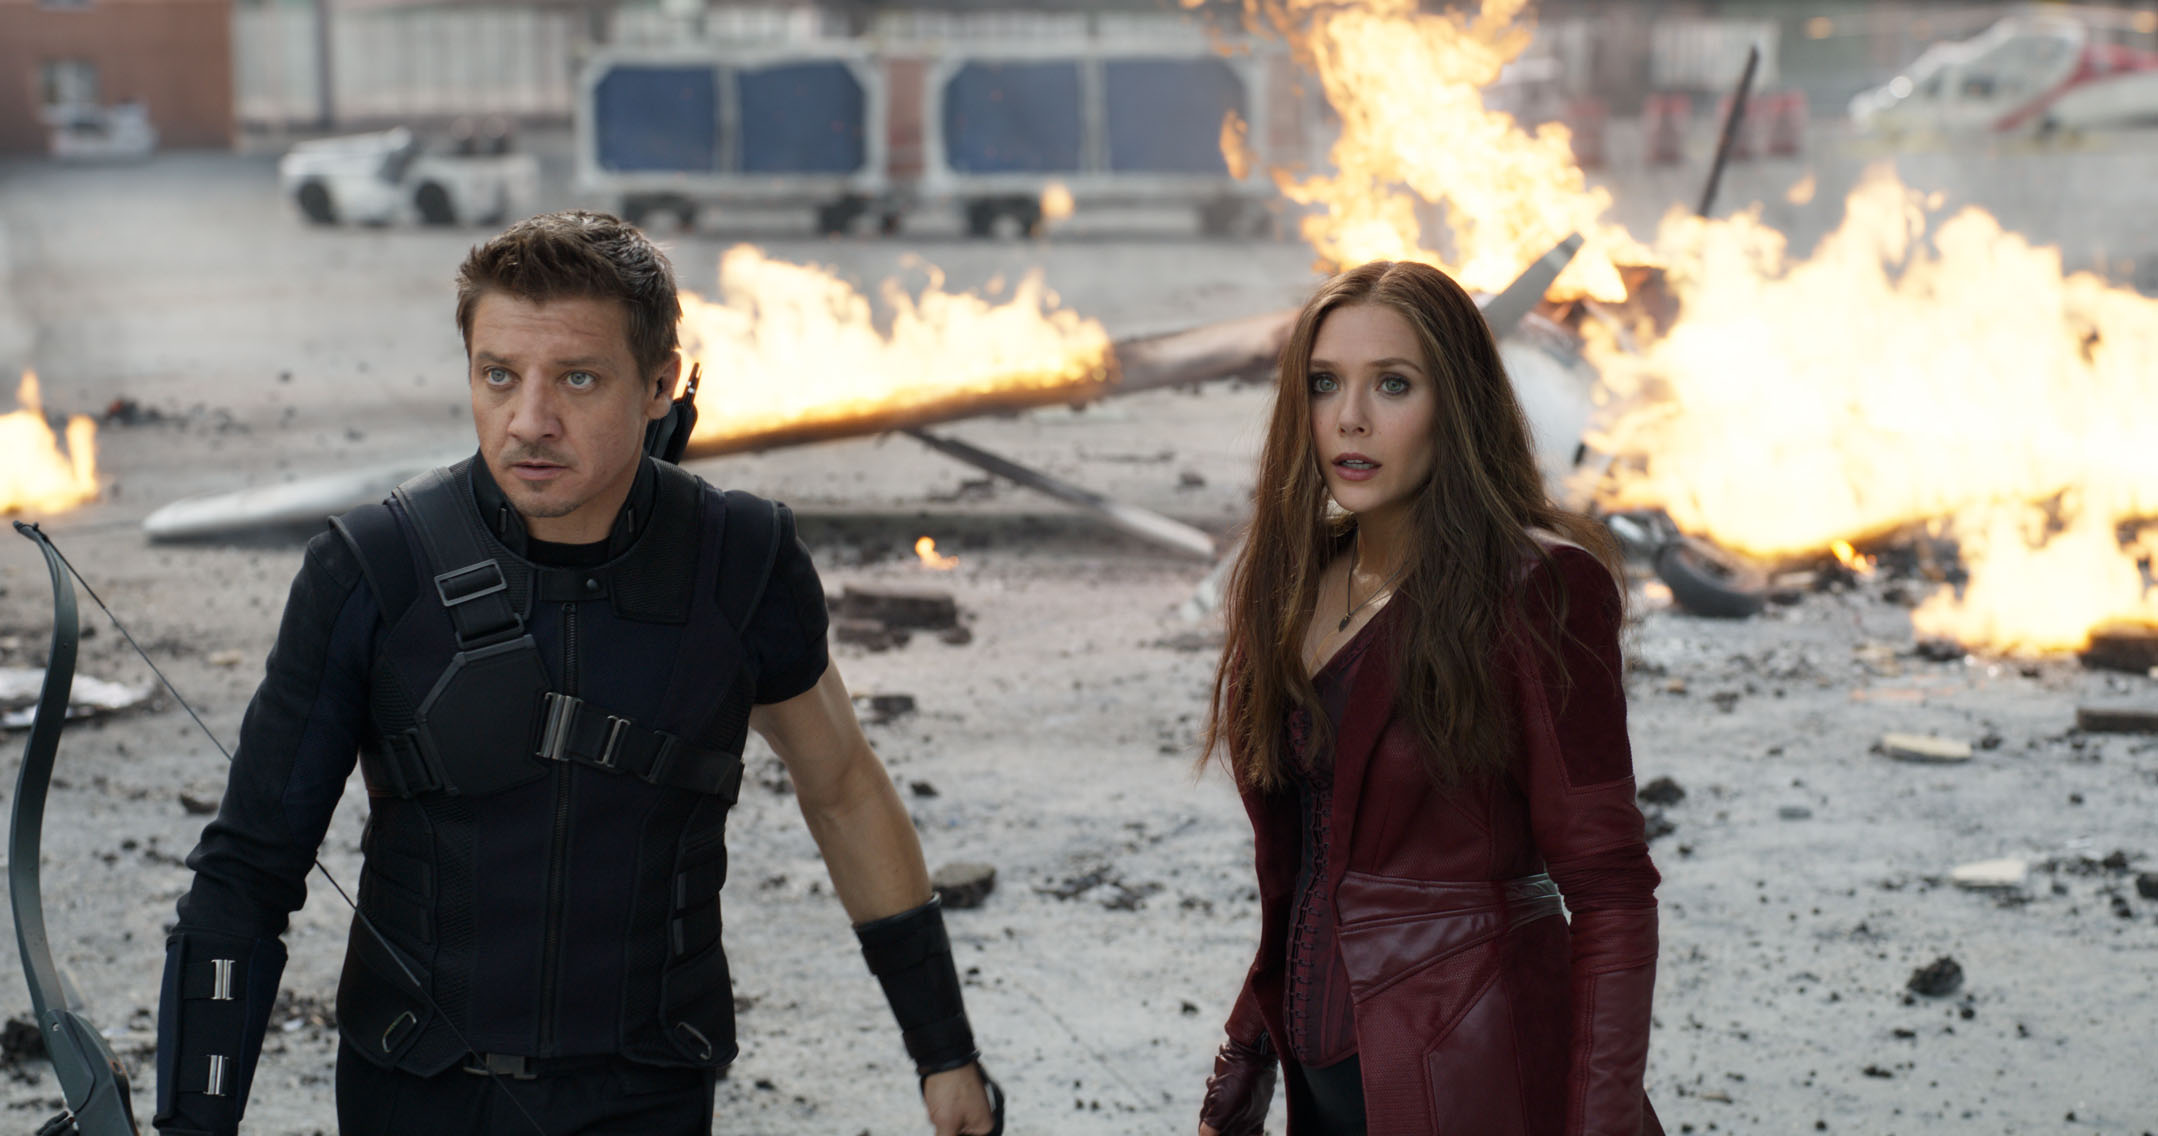 No Merchandising. Editorial Use Only. No Book Cover Usage.Mandatory Credit: Photo by Marvel Studios/Kobal/REX/Shutterstock (5886221bk) Jeremy Renner, Elizabeth Olsen Captain America - Civil War - 2016 Director: Anthony Russo / Joe Russo Marvel Studios USA Scene Still Action/Adventure